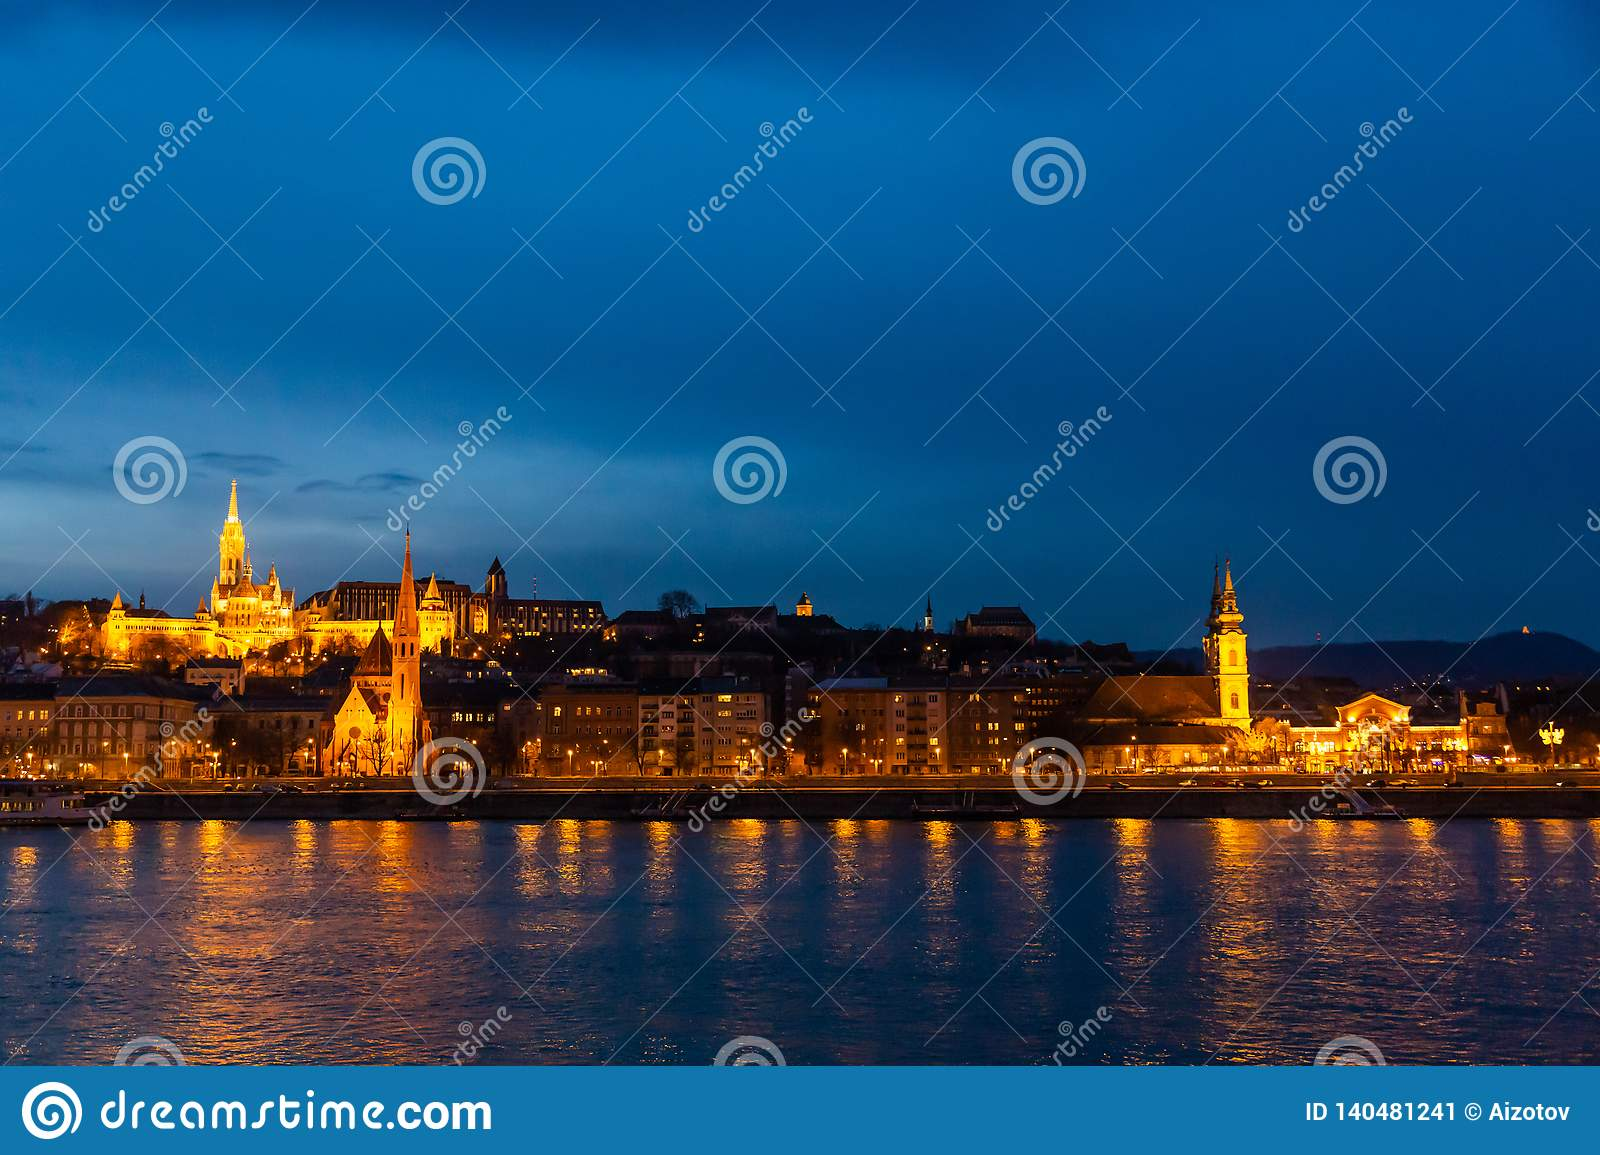 Fisherman`s bastion in night lighting and its reflection in the Danube in Budapest, Hungary